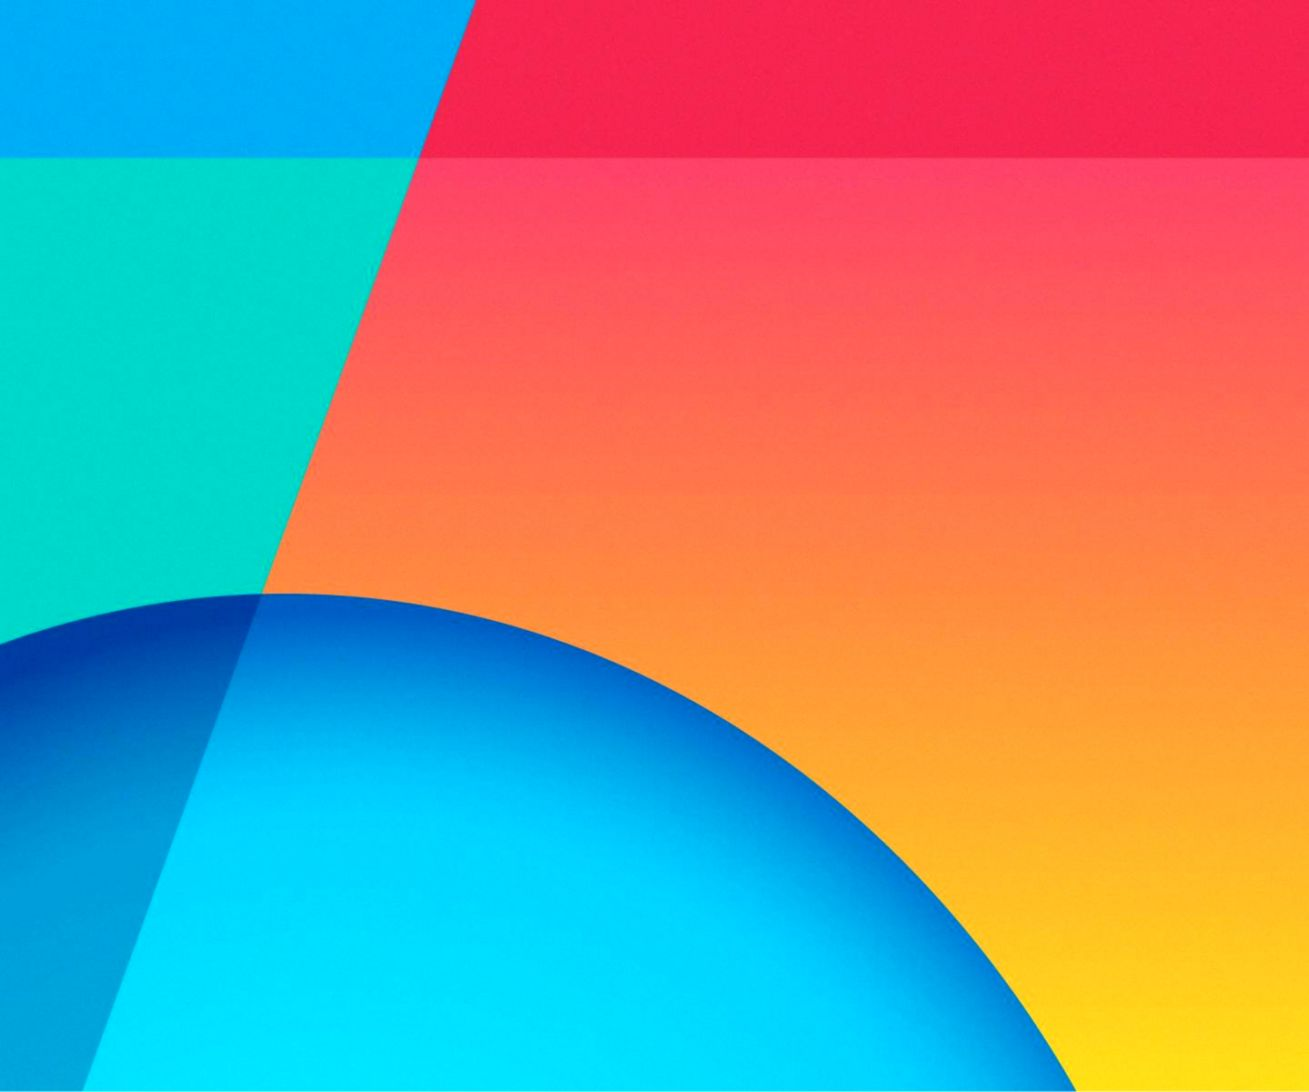 Colorful Nexus 5 Wallpapers Hd Wallpapers Mhytic 1309x1092